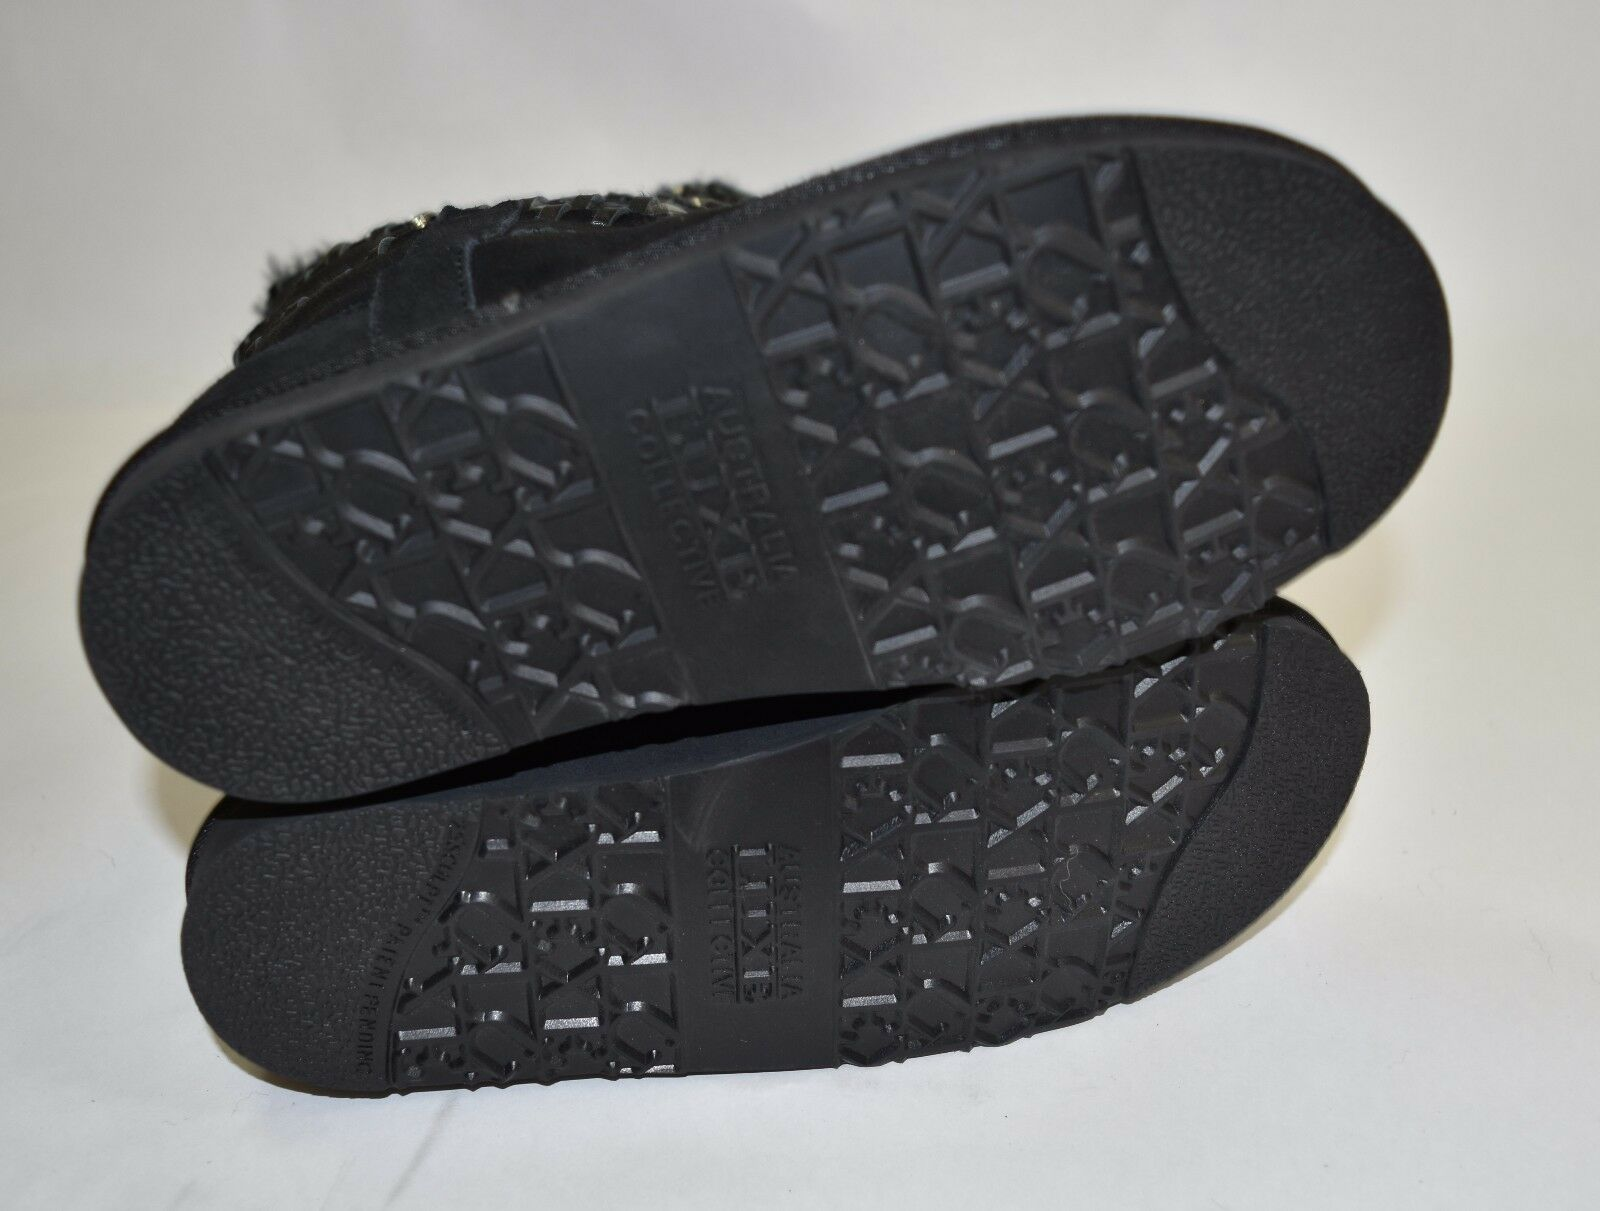 New  Australia Luxe Collective 'Ulysses' Boot Black Black Black Size 5 Snow Boots  395 db6f98